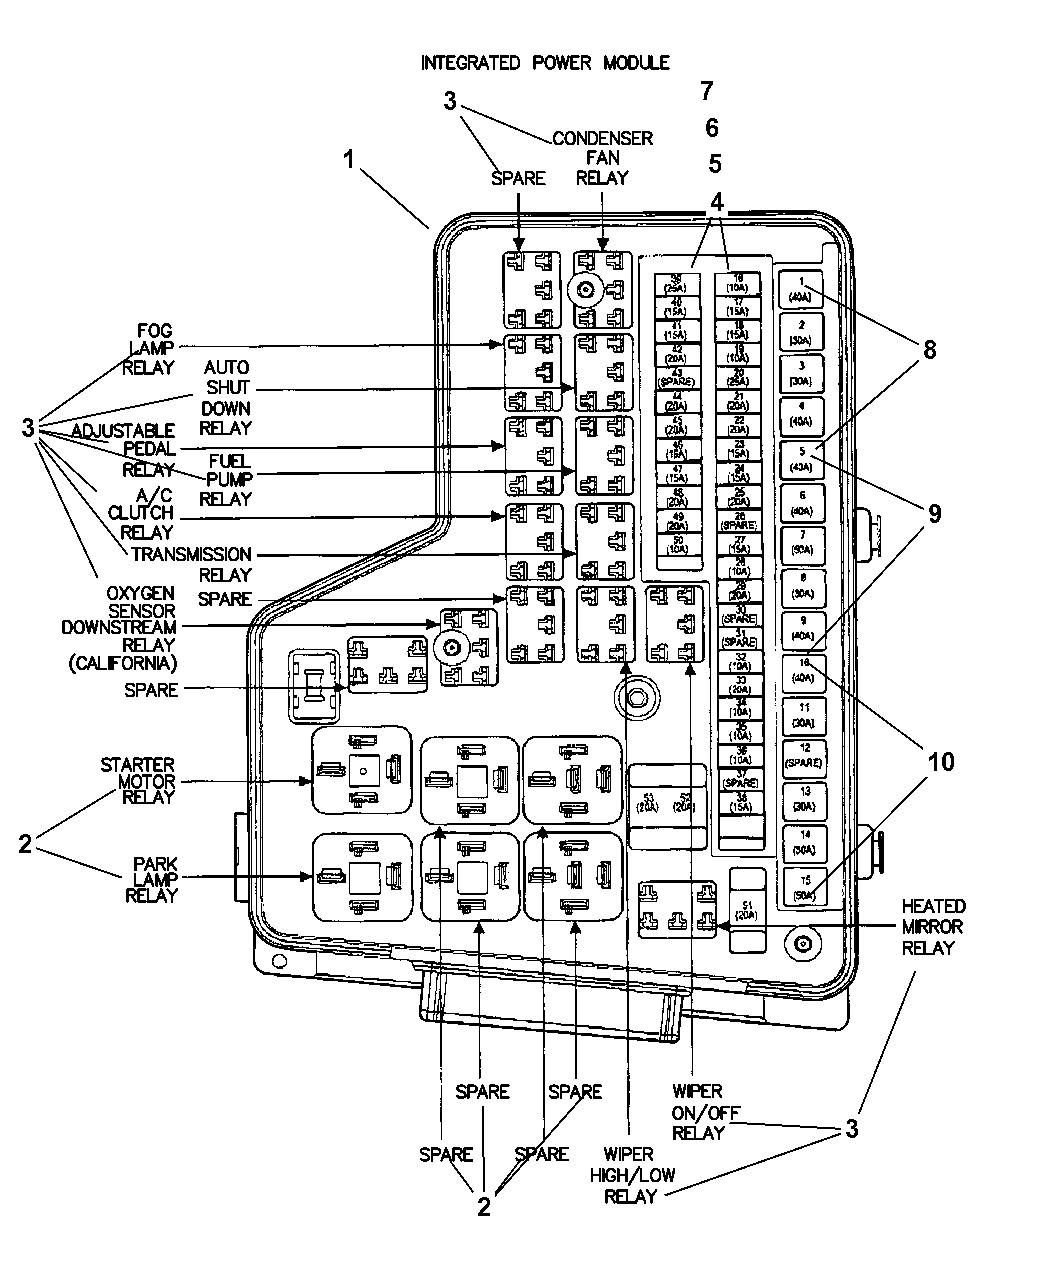 2003 Dodge Ram 1500 Power Window Wiring Diagram Along With Central